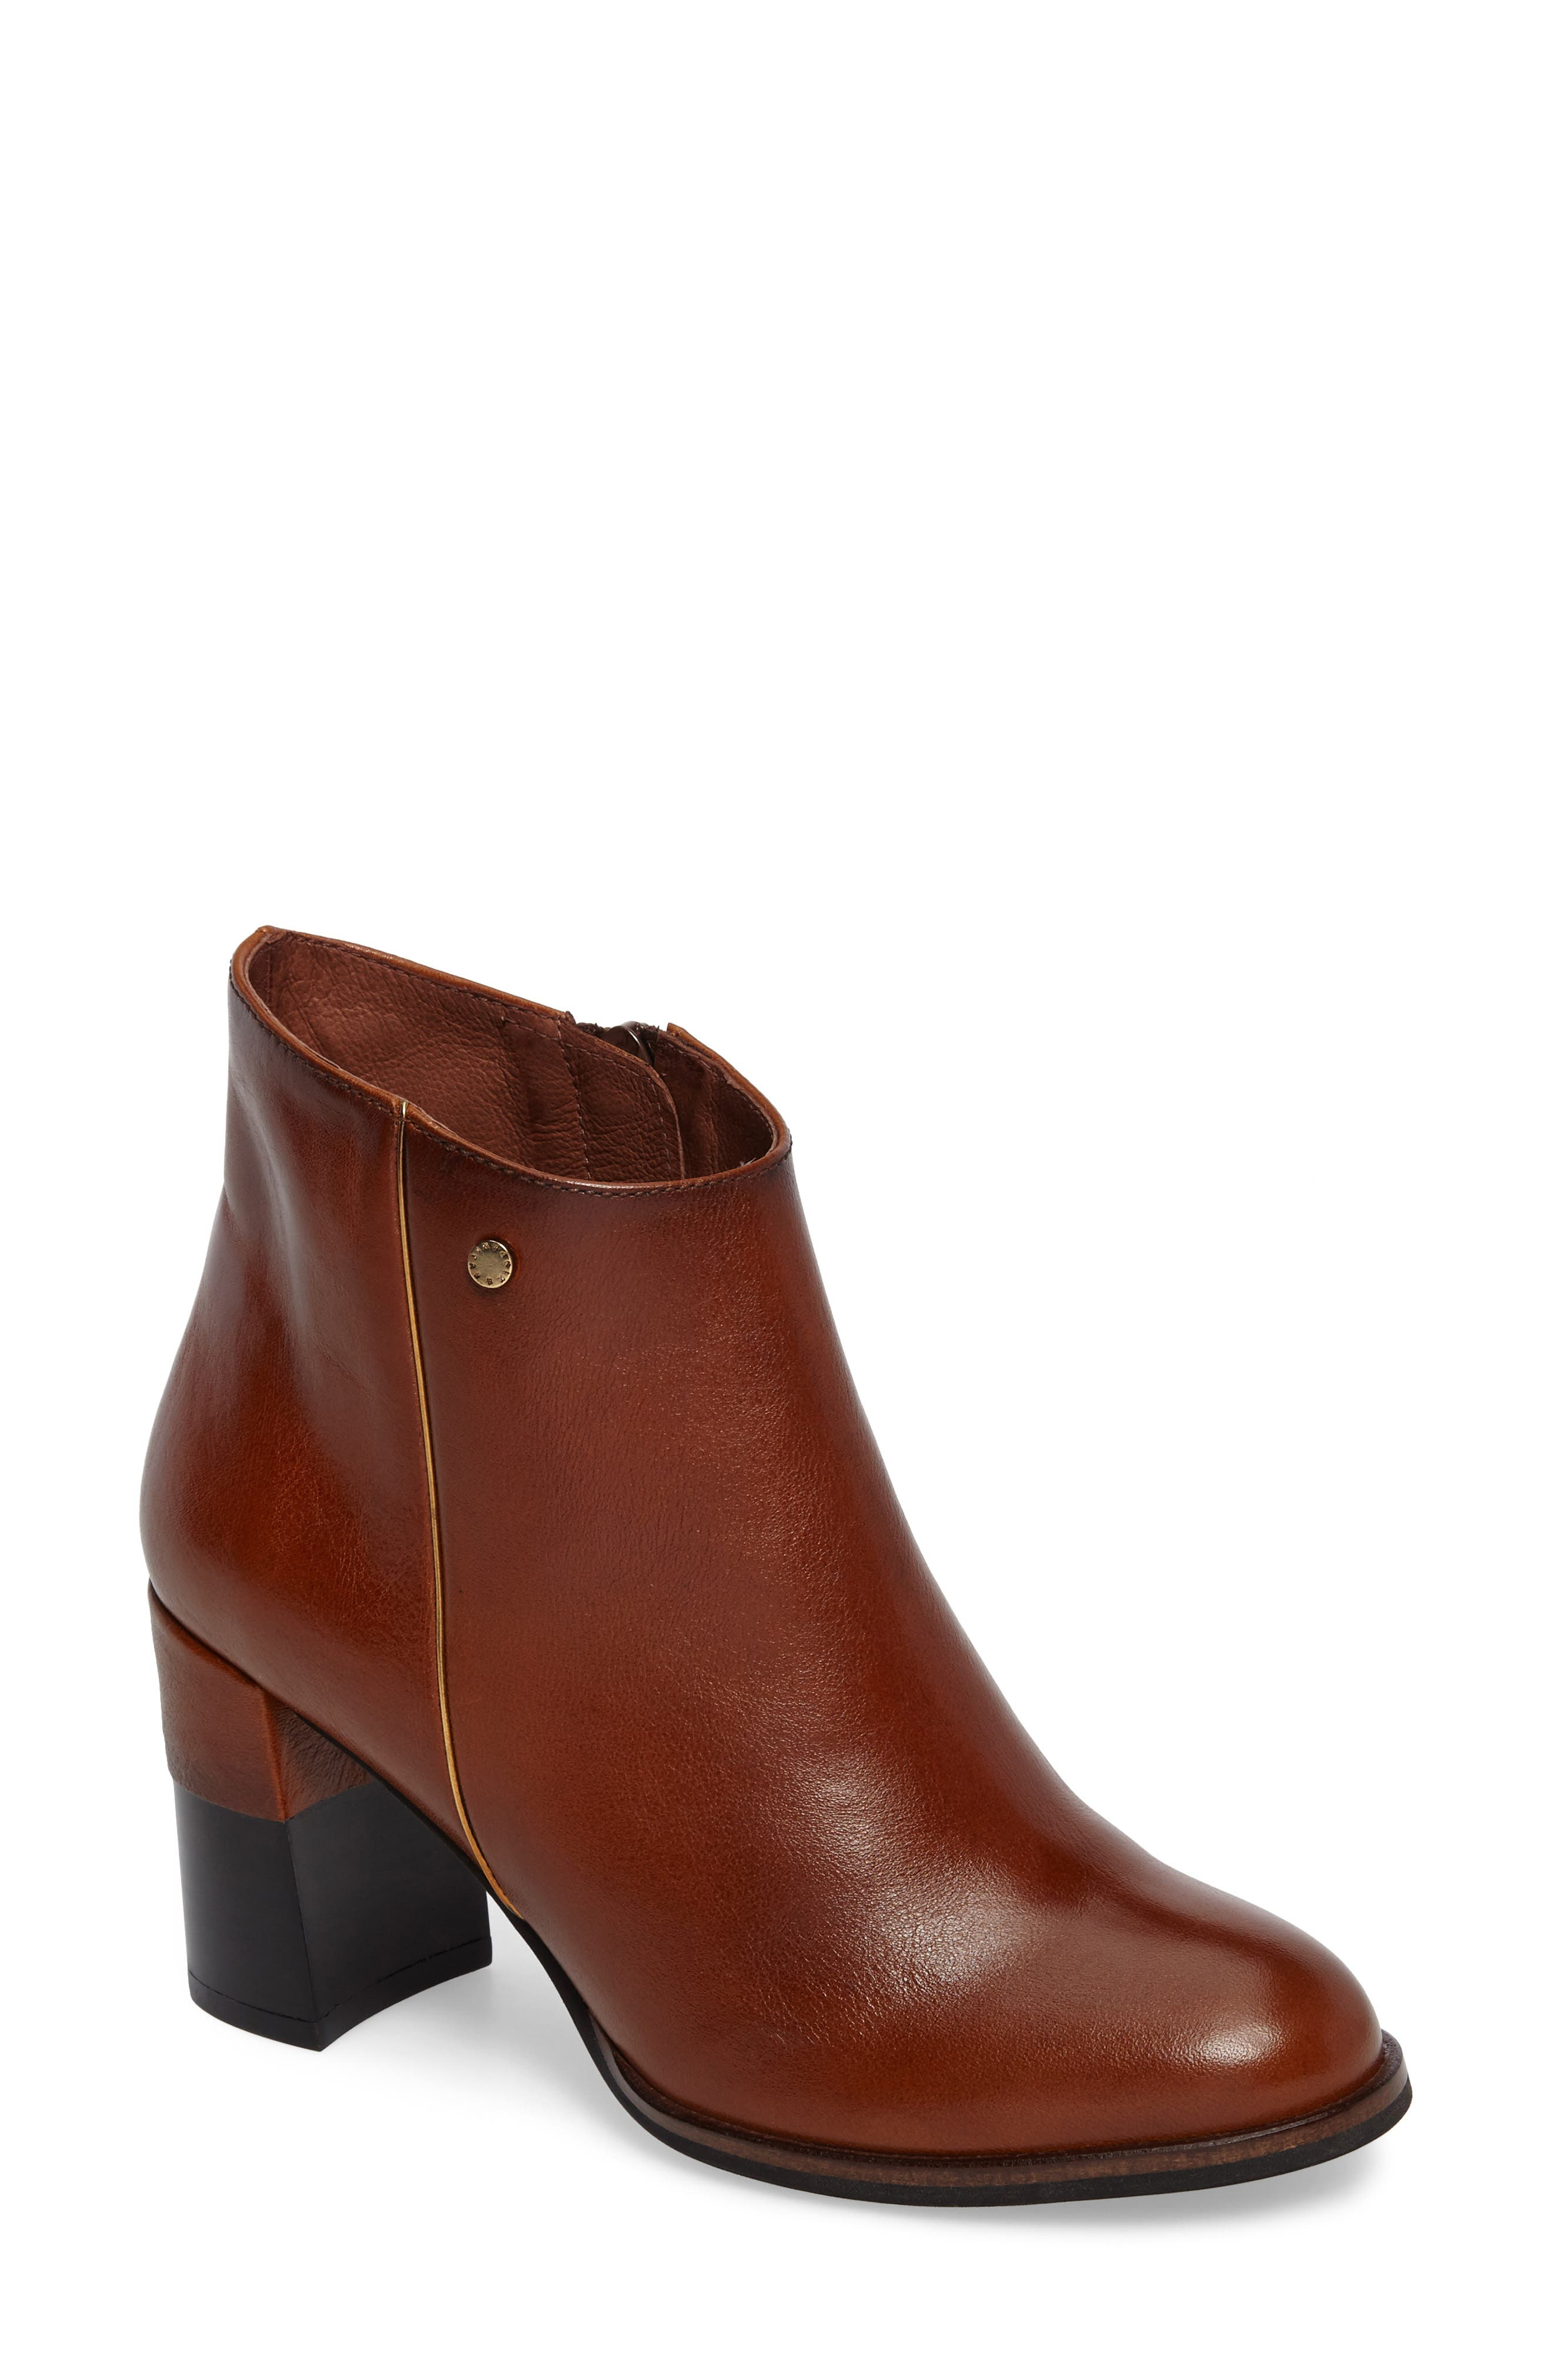 HISPANITAS, Ashbury Bootie, Main thumbnail 1, color, CUOIO LEATHER